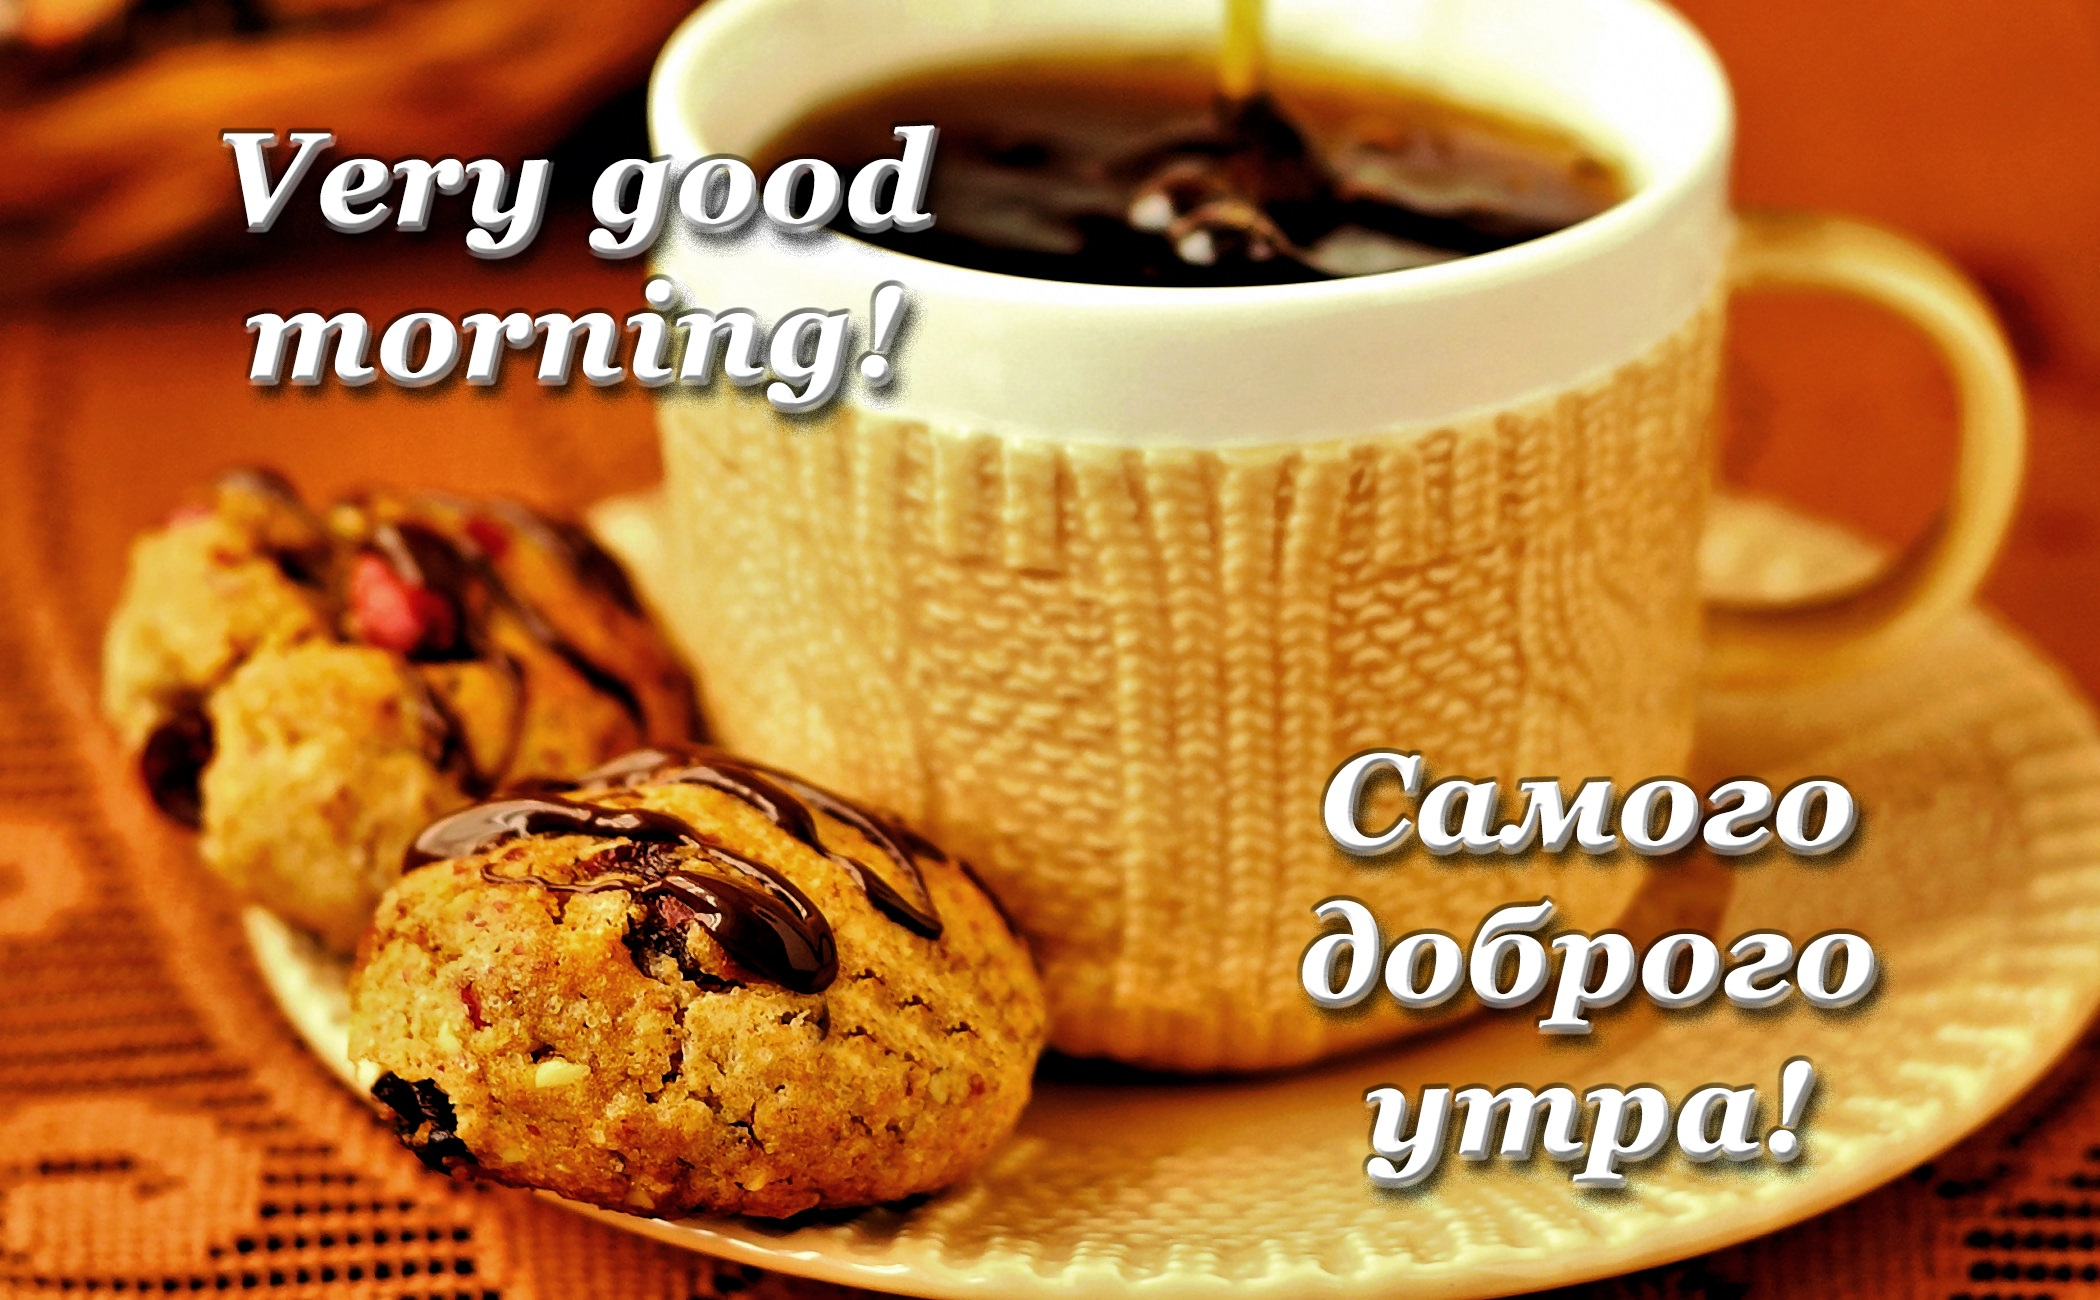 00-coffee-cup-and-biscuits-120217